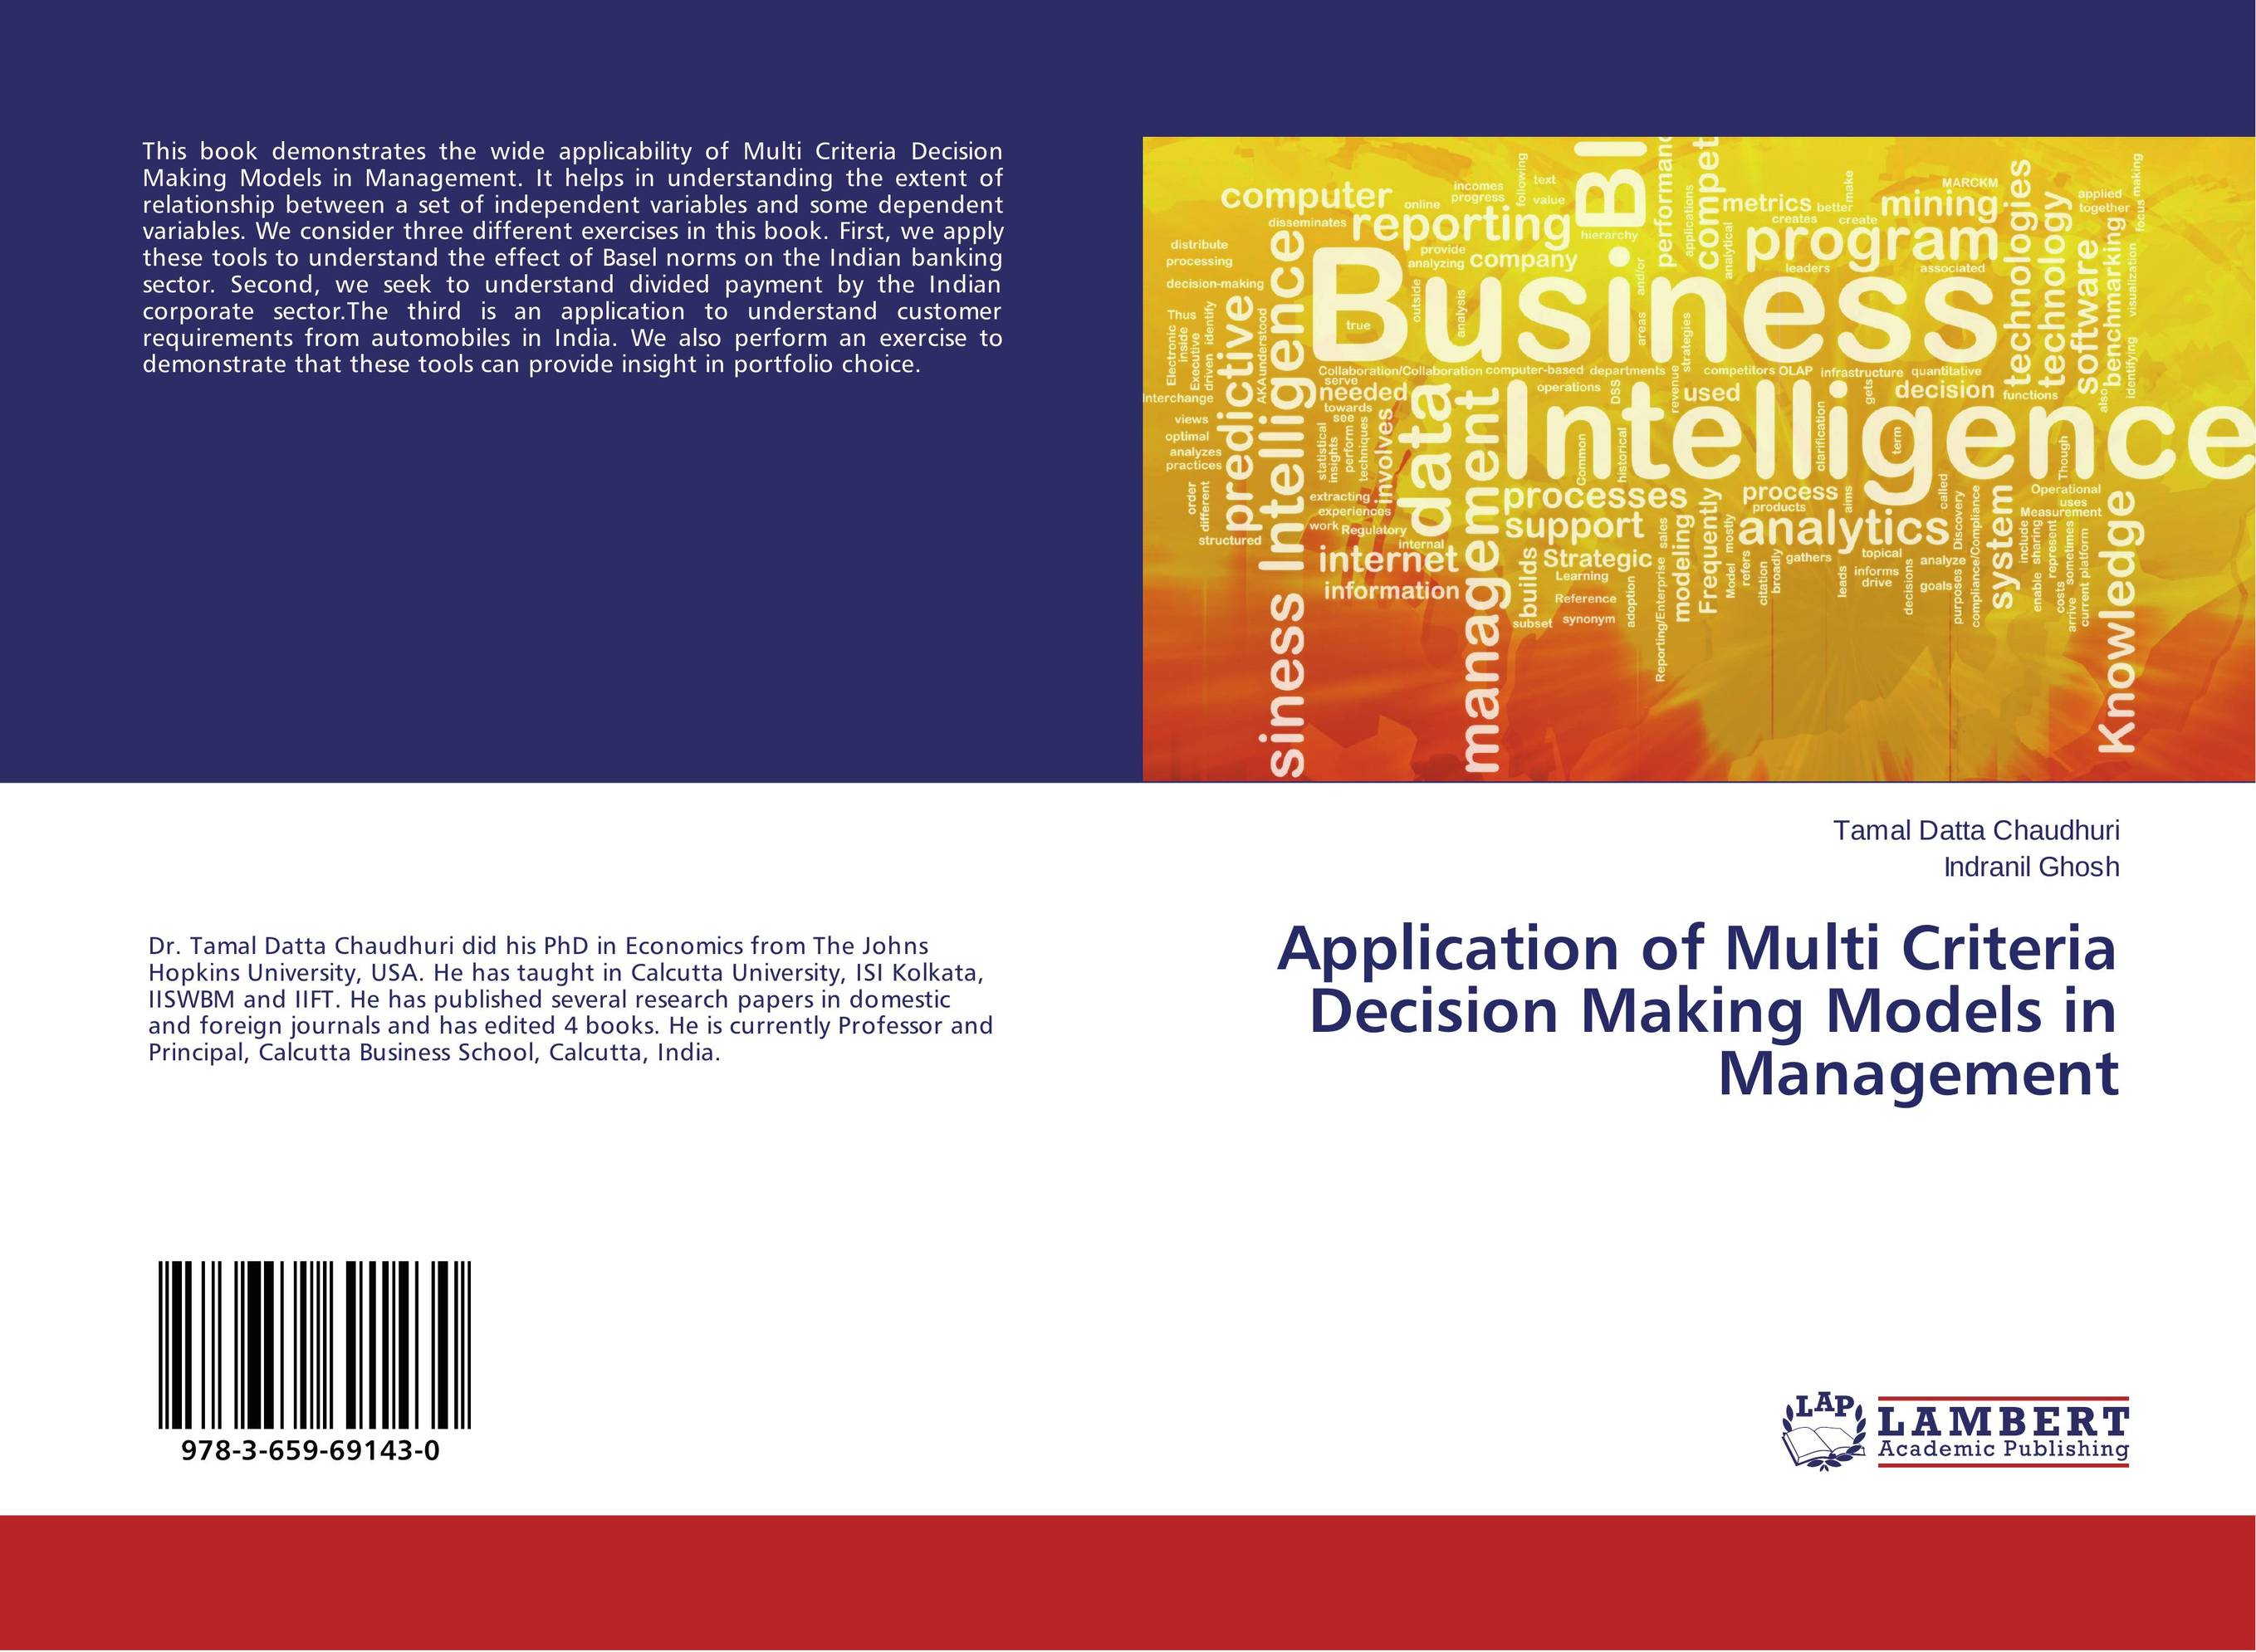 Application of Multi Criteria Decision Making Models in Management